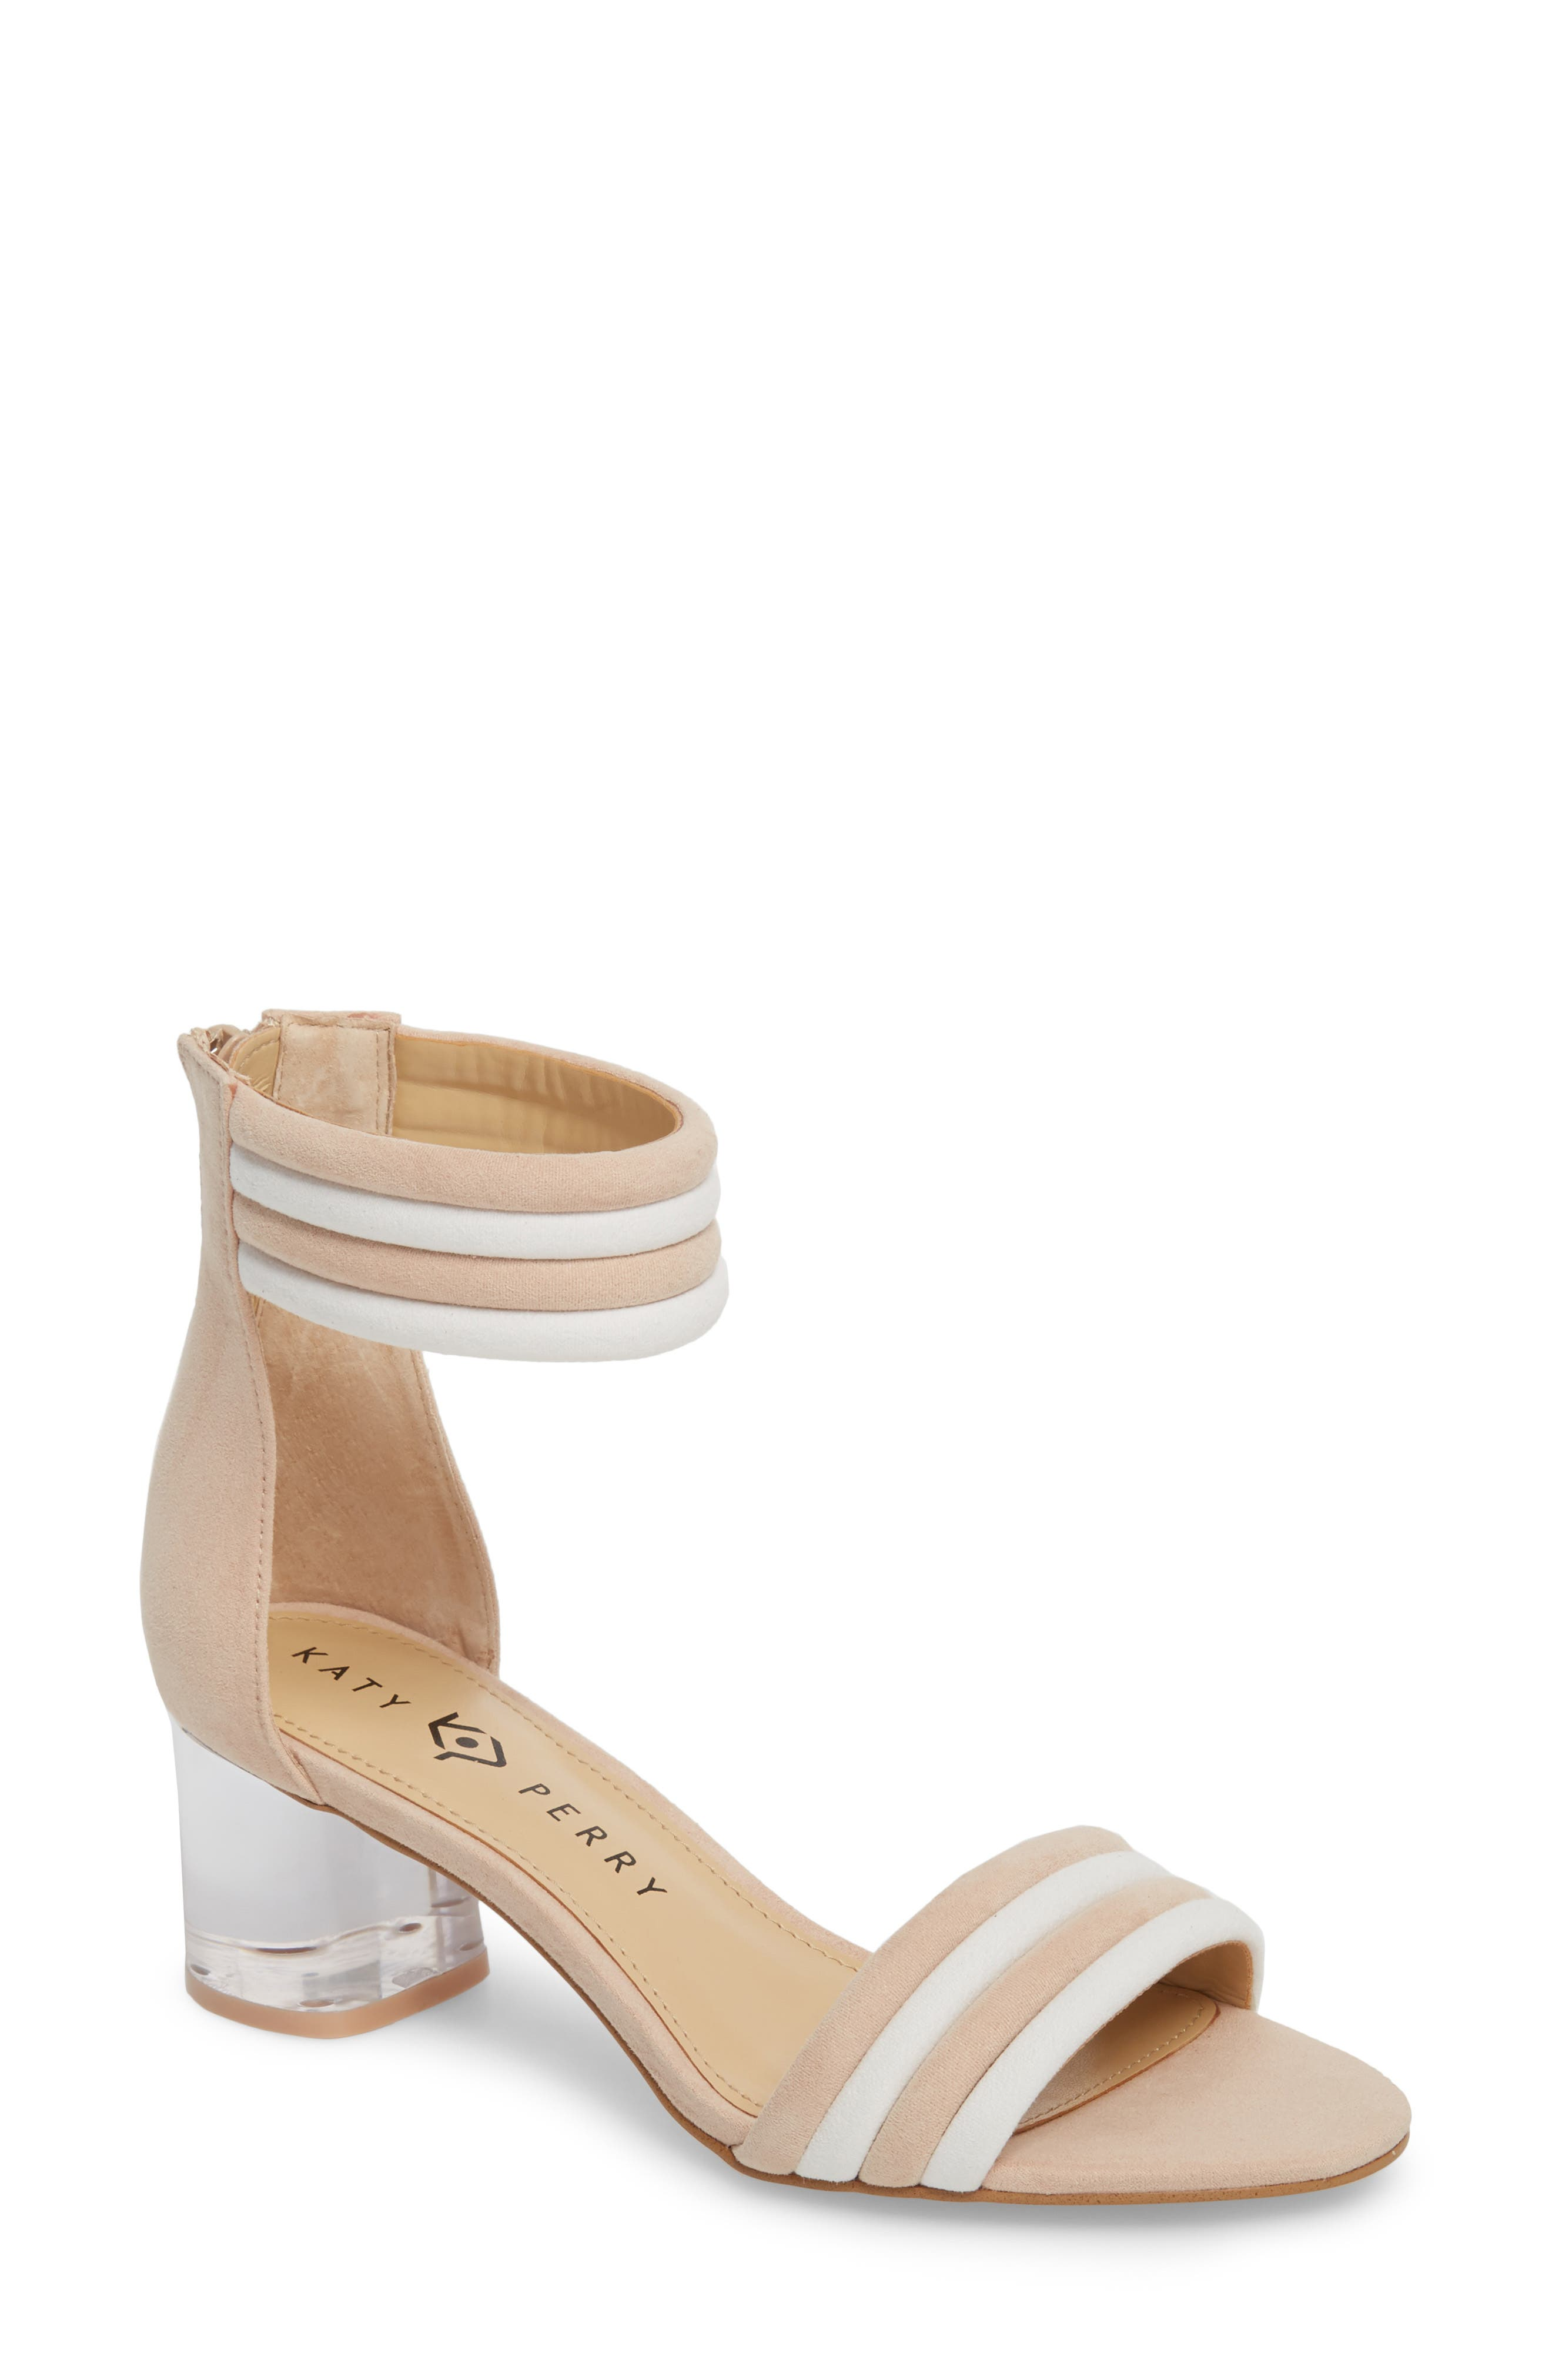 Katy perry Women's Tube Strap Sandal YiqTSDKu